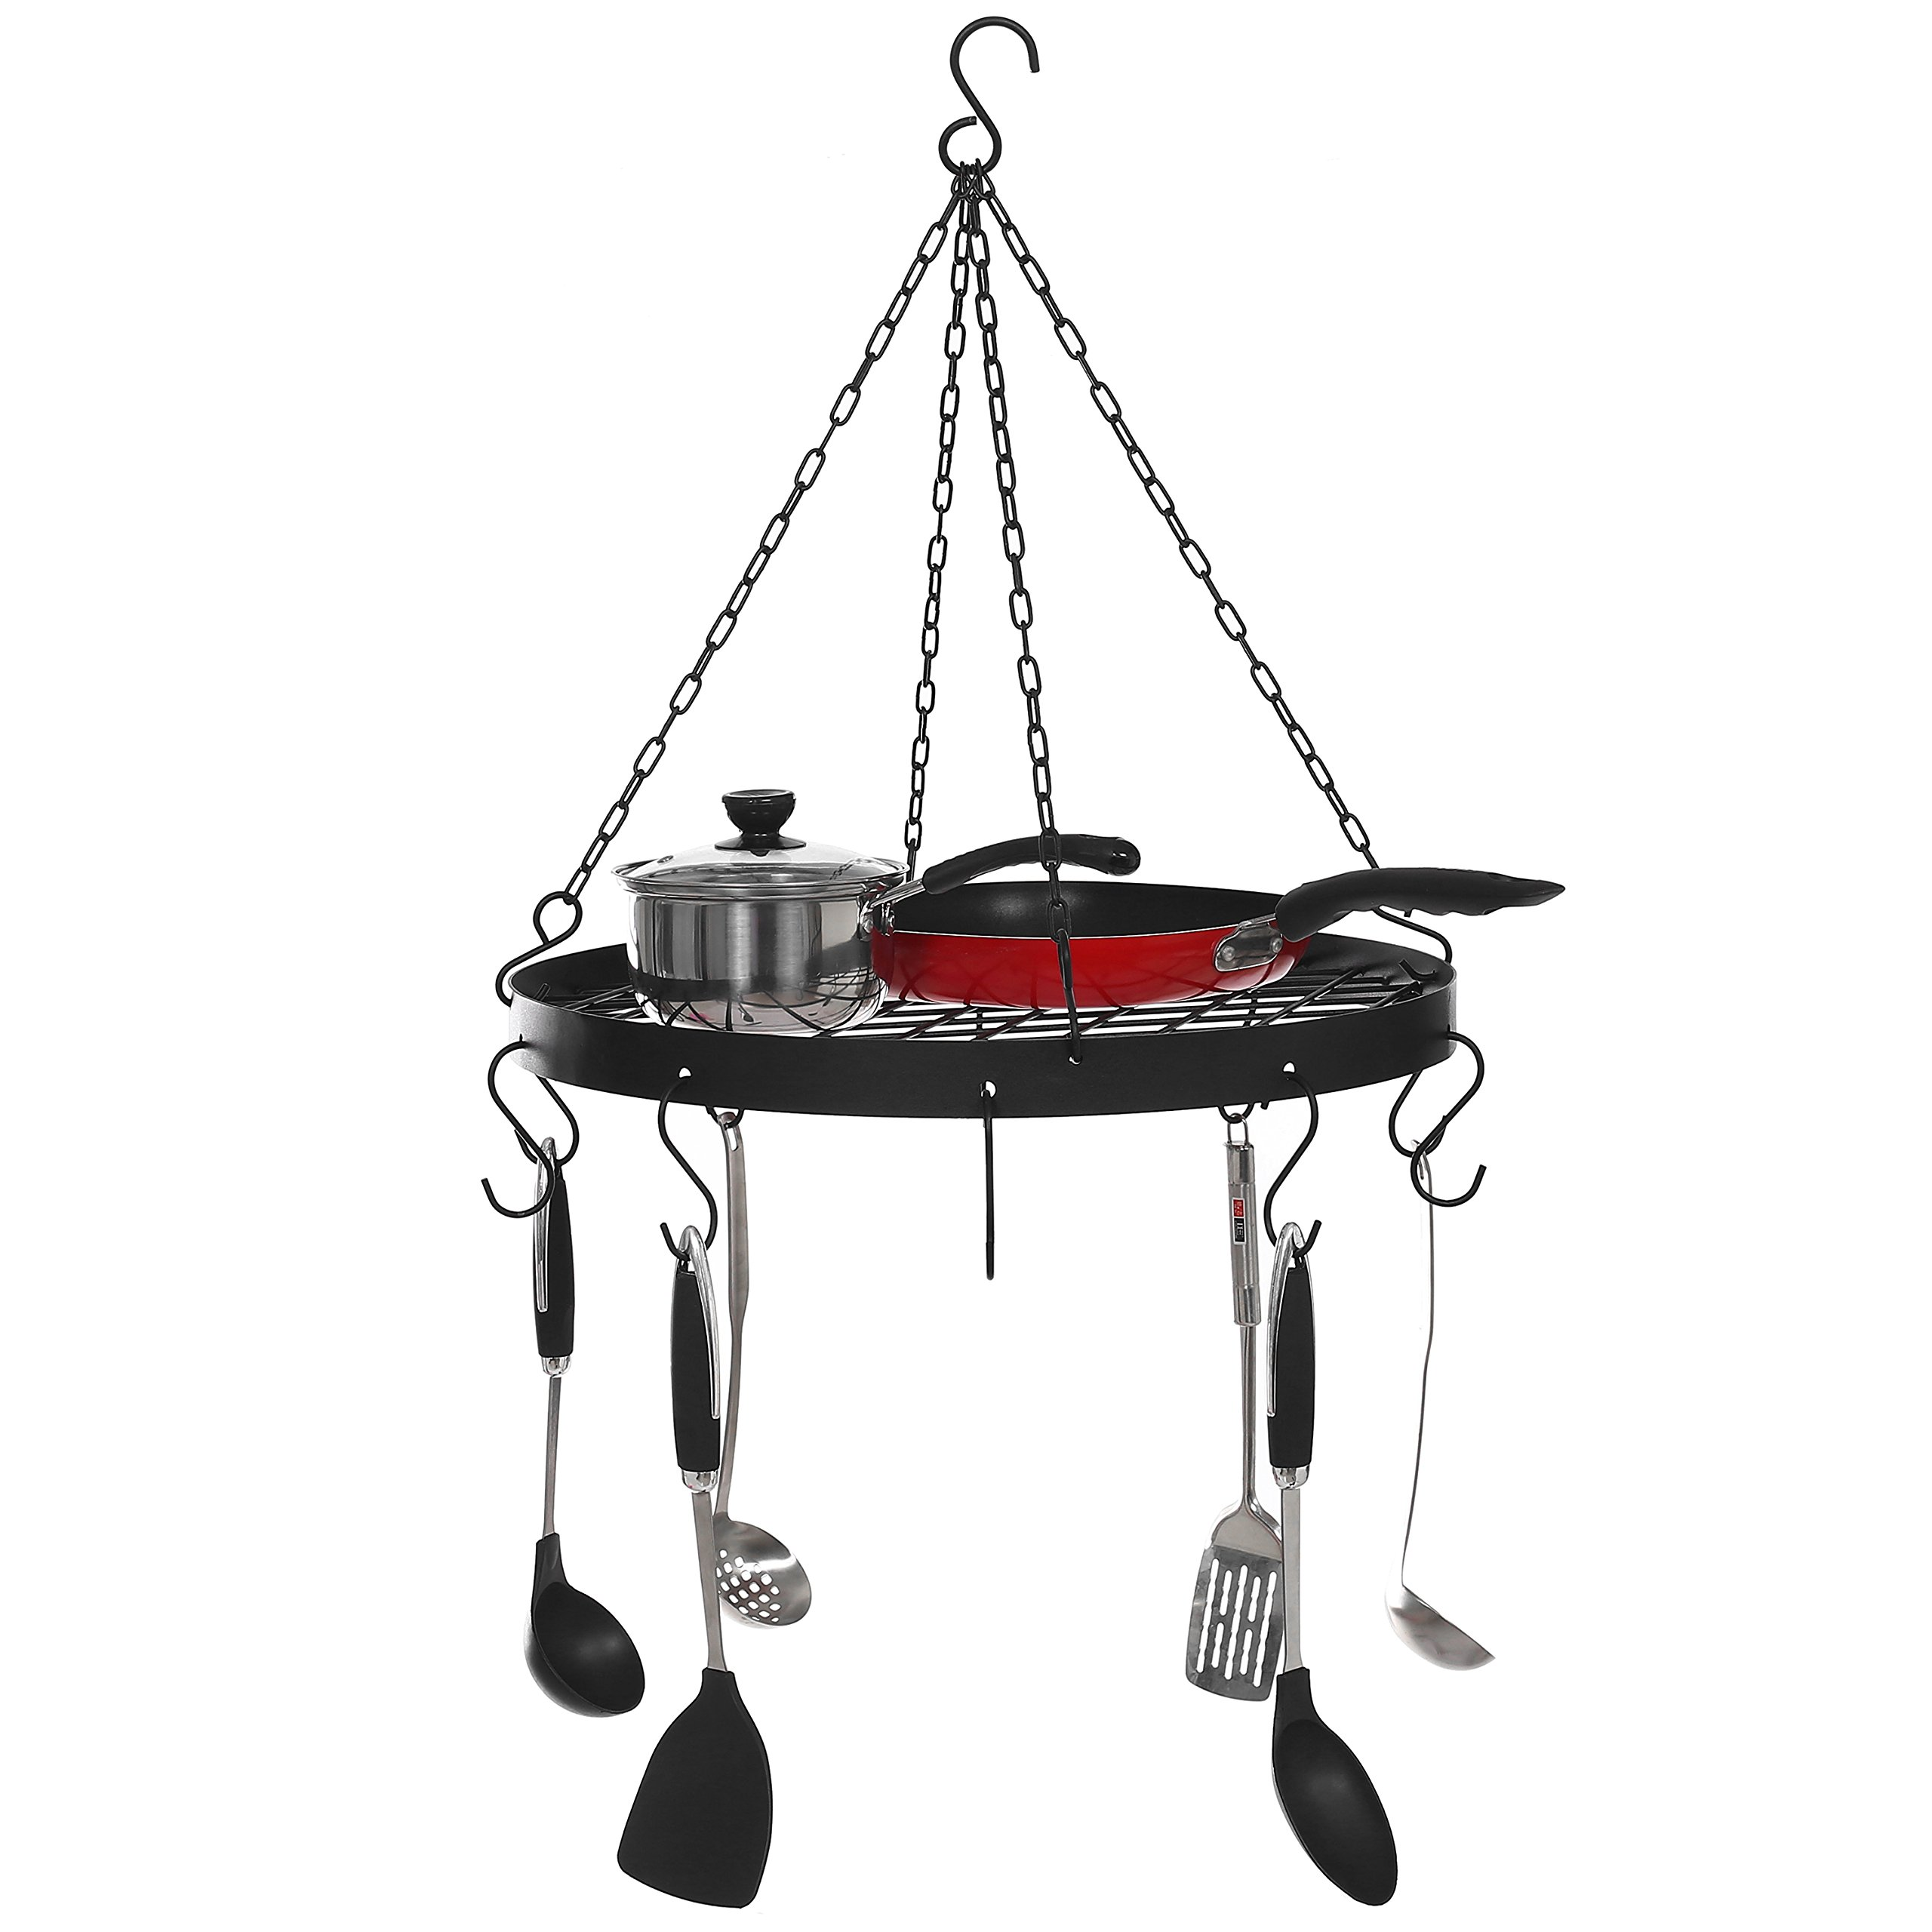 Black Metal Ceiling-Mounted Round Pots, Pans & Utensils Rack w/ Hanging 10 S-Hooks and Wire Grate Shelf.